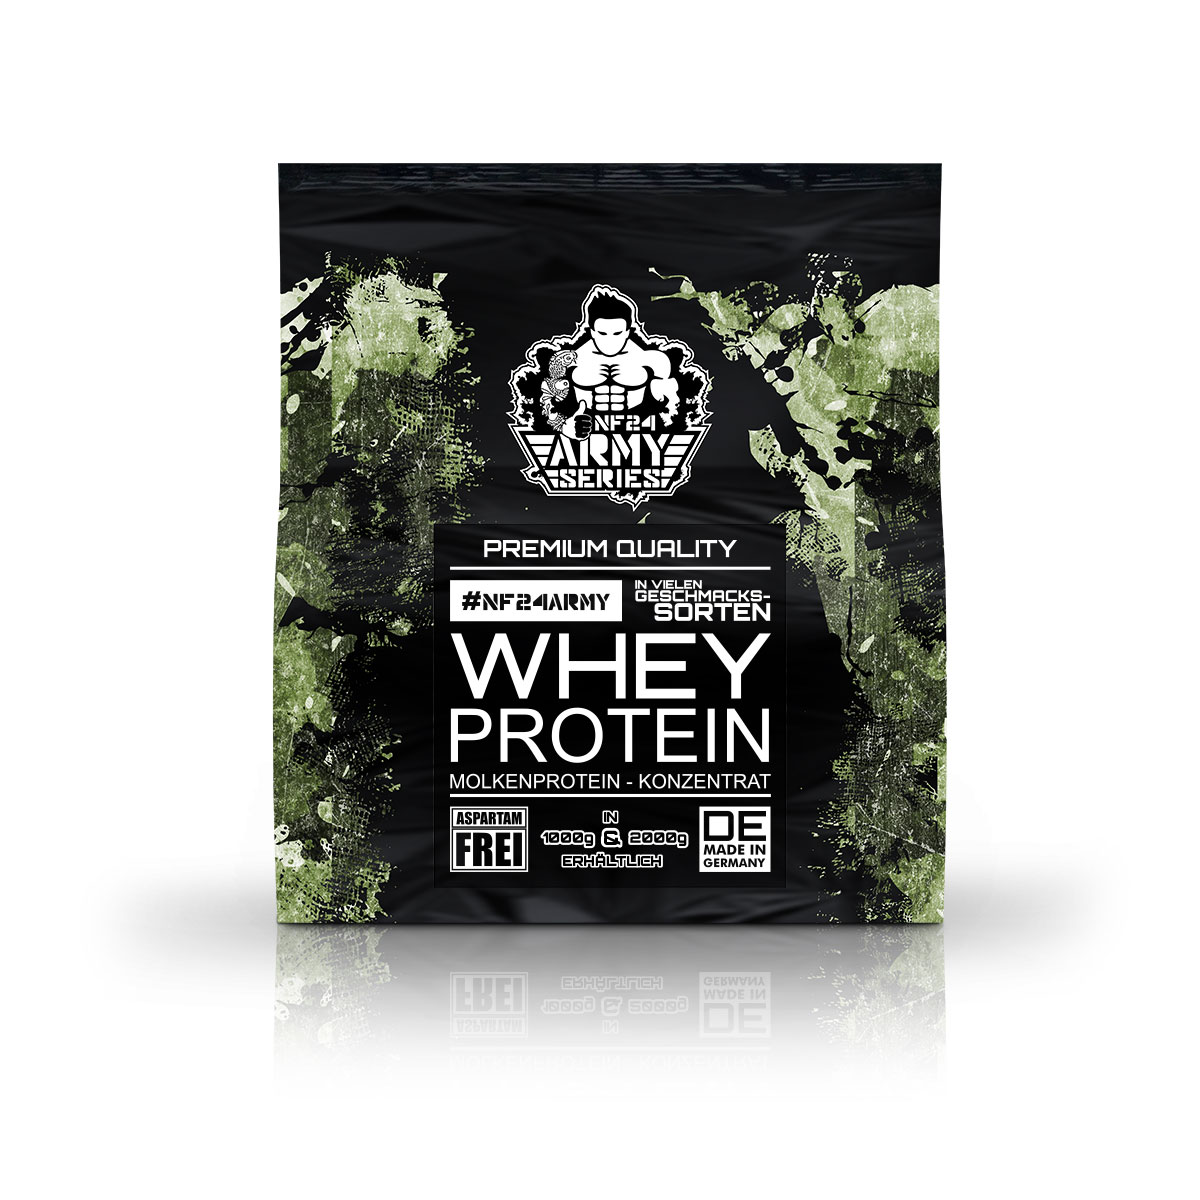 NF24-Packshot-WHEY-PROTEIN58c6a55abe937